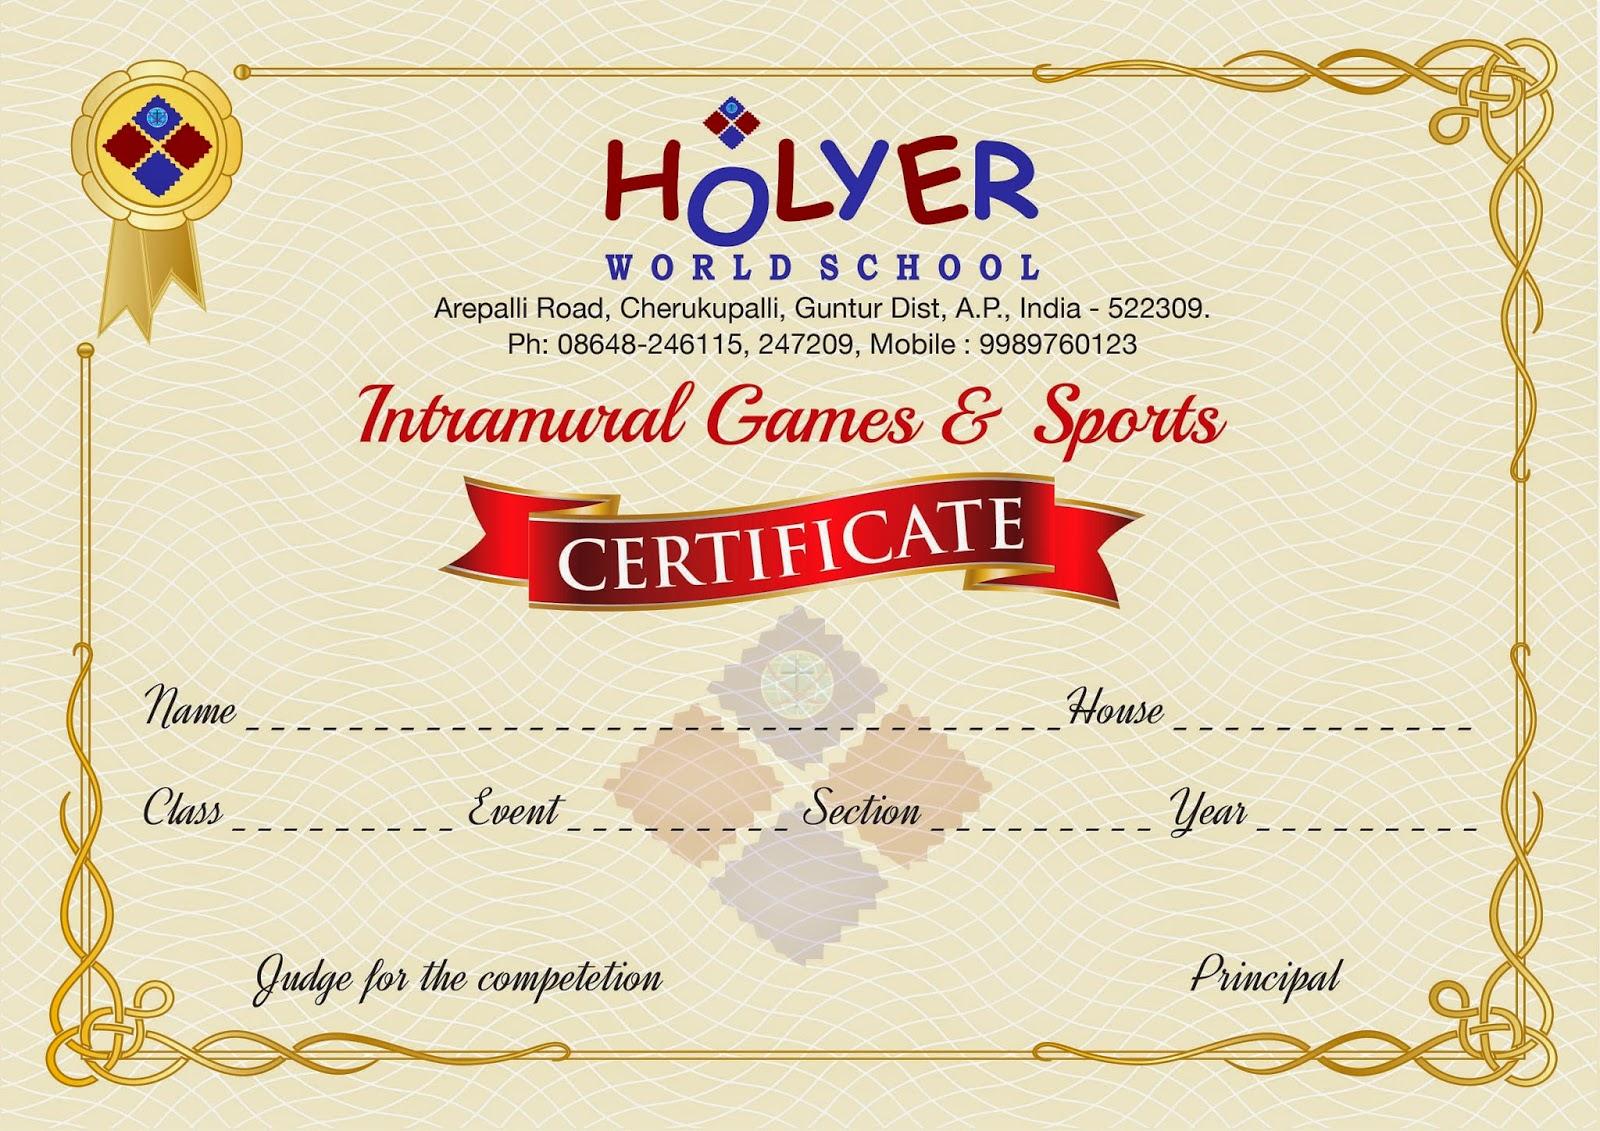 Shoelace designs certificate design payroll payslip template child certificate sports certificates design sports free business proposal sports2bcertificates2bcertificate 1 01 certificate xflitez Gallery